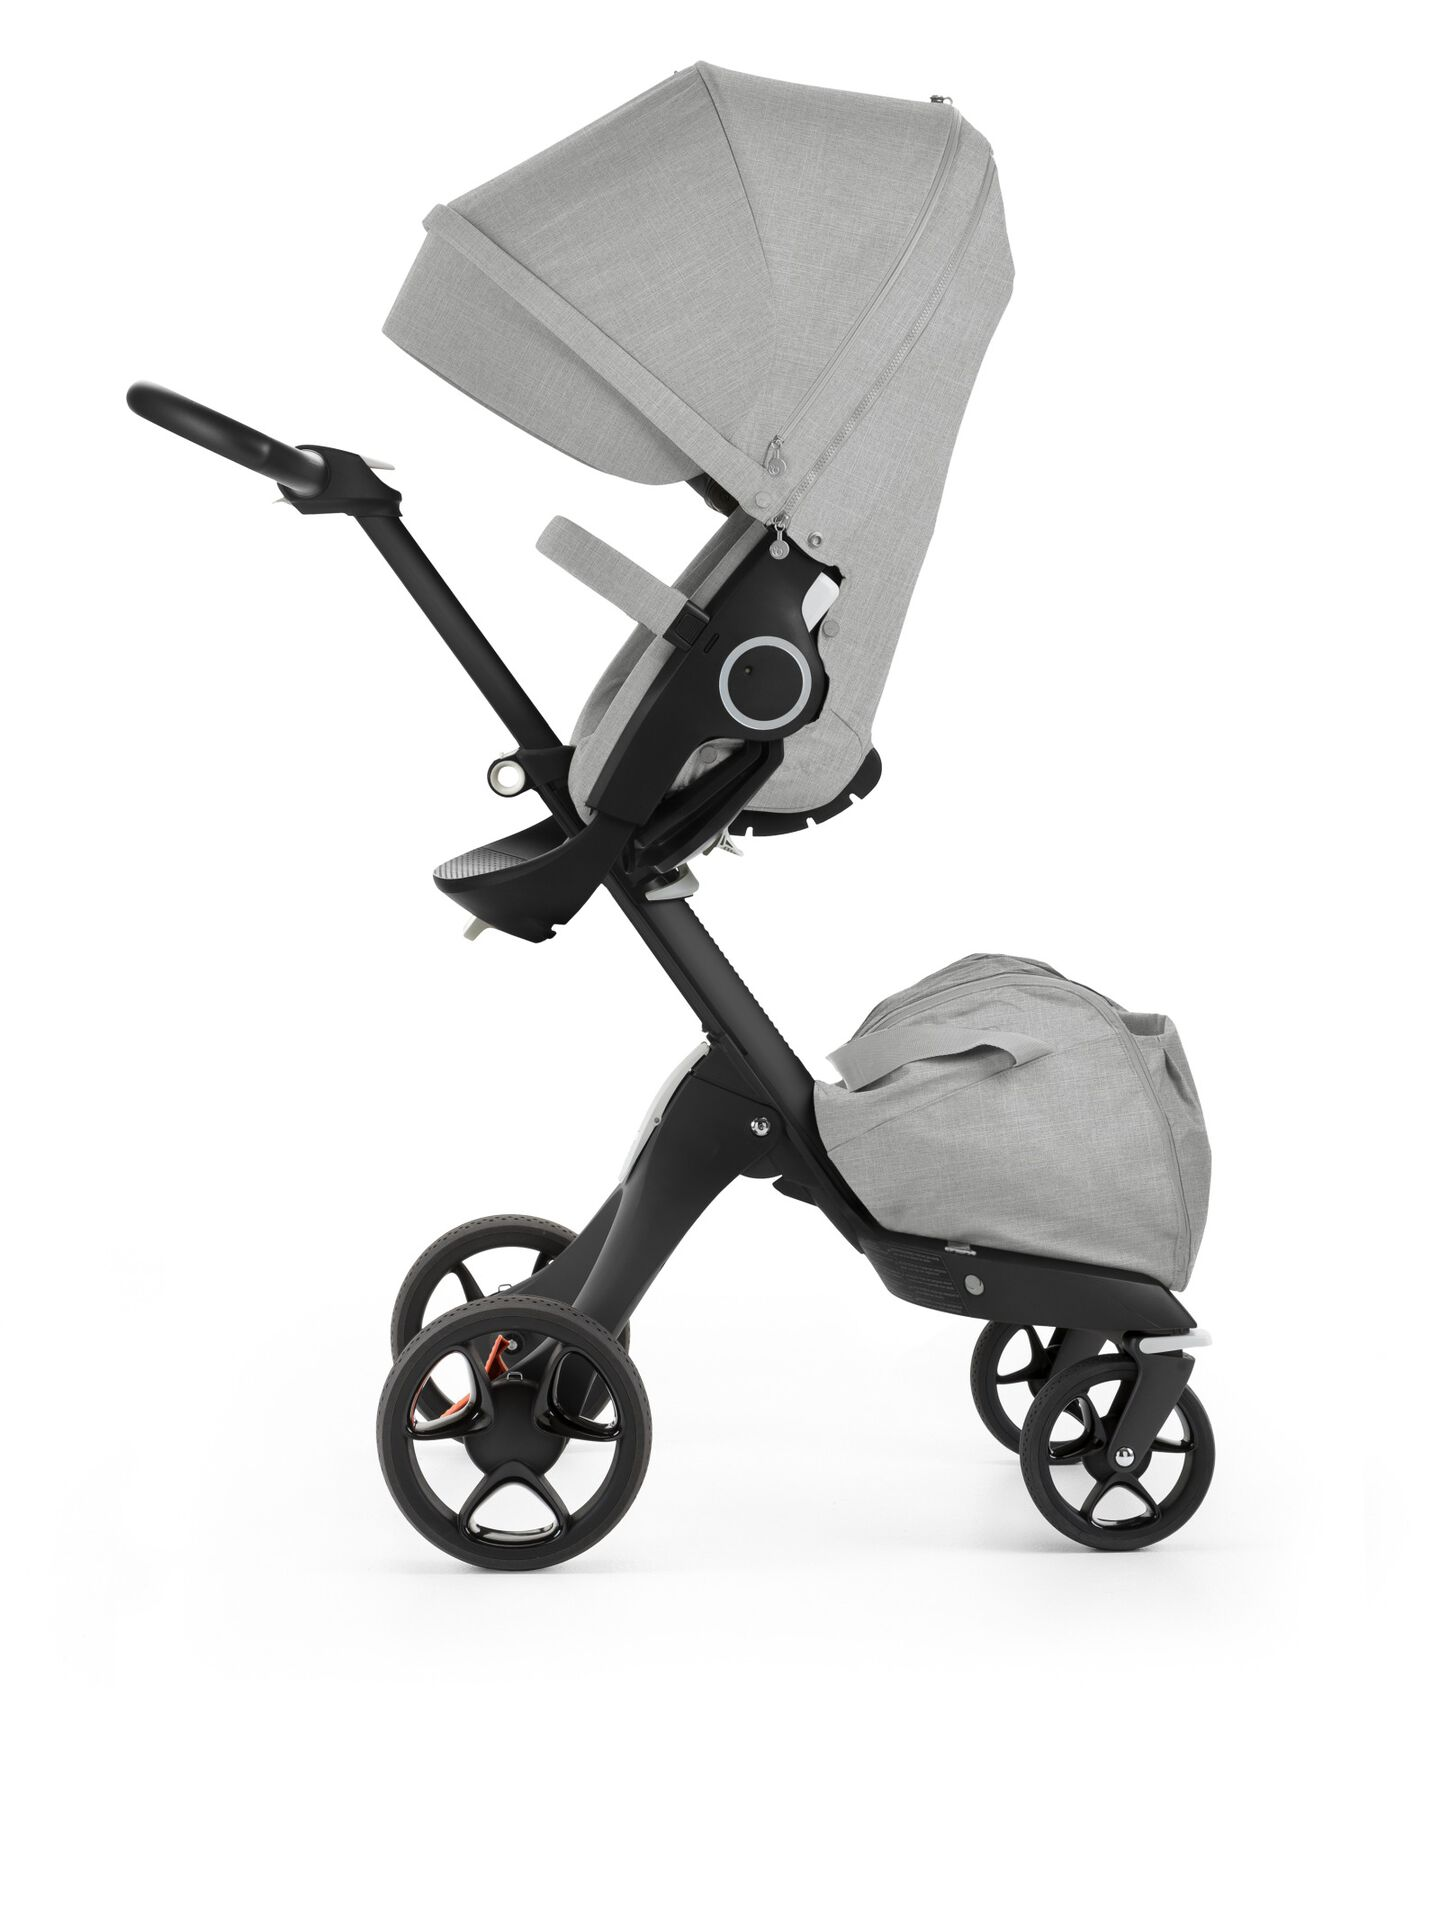 Stokke® Xplory® with Black Chassis and Stokke® Stroller Seat, Grey Melange. New wheels 2016.